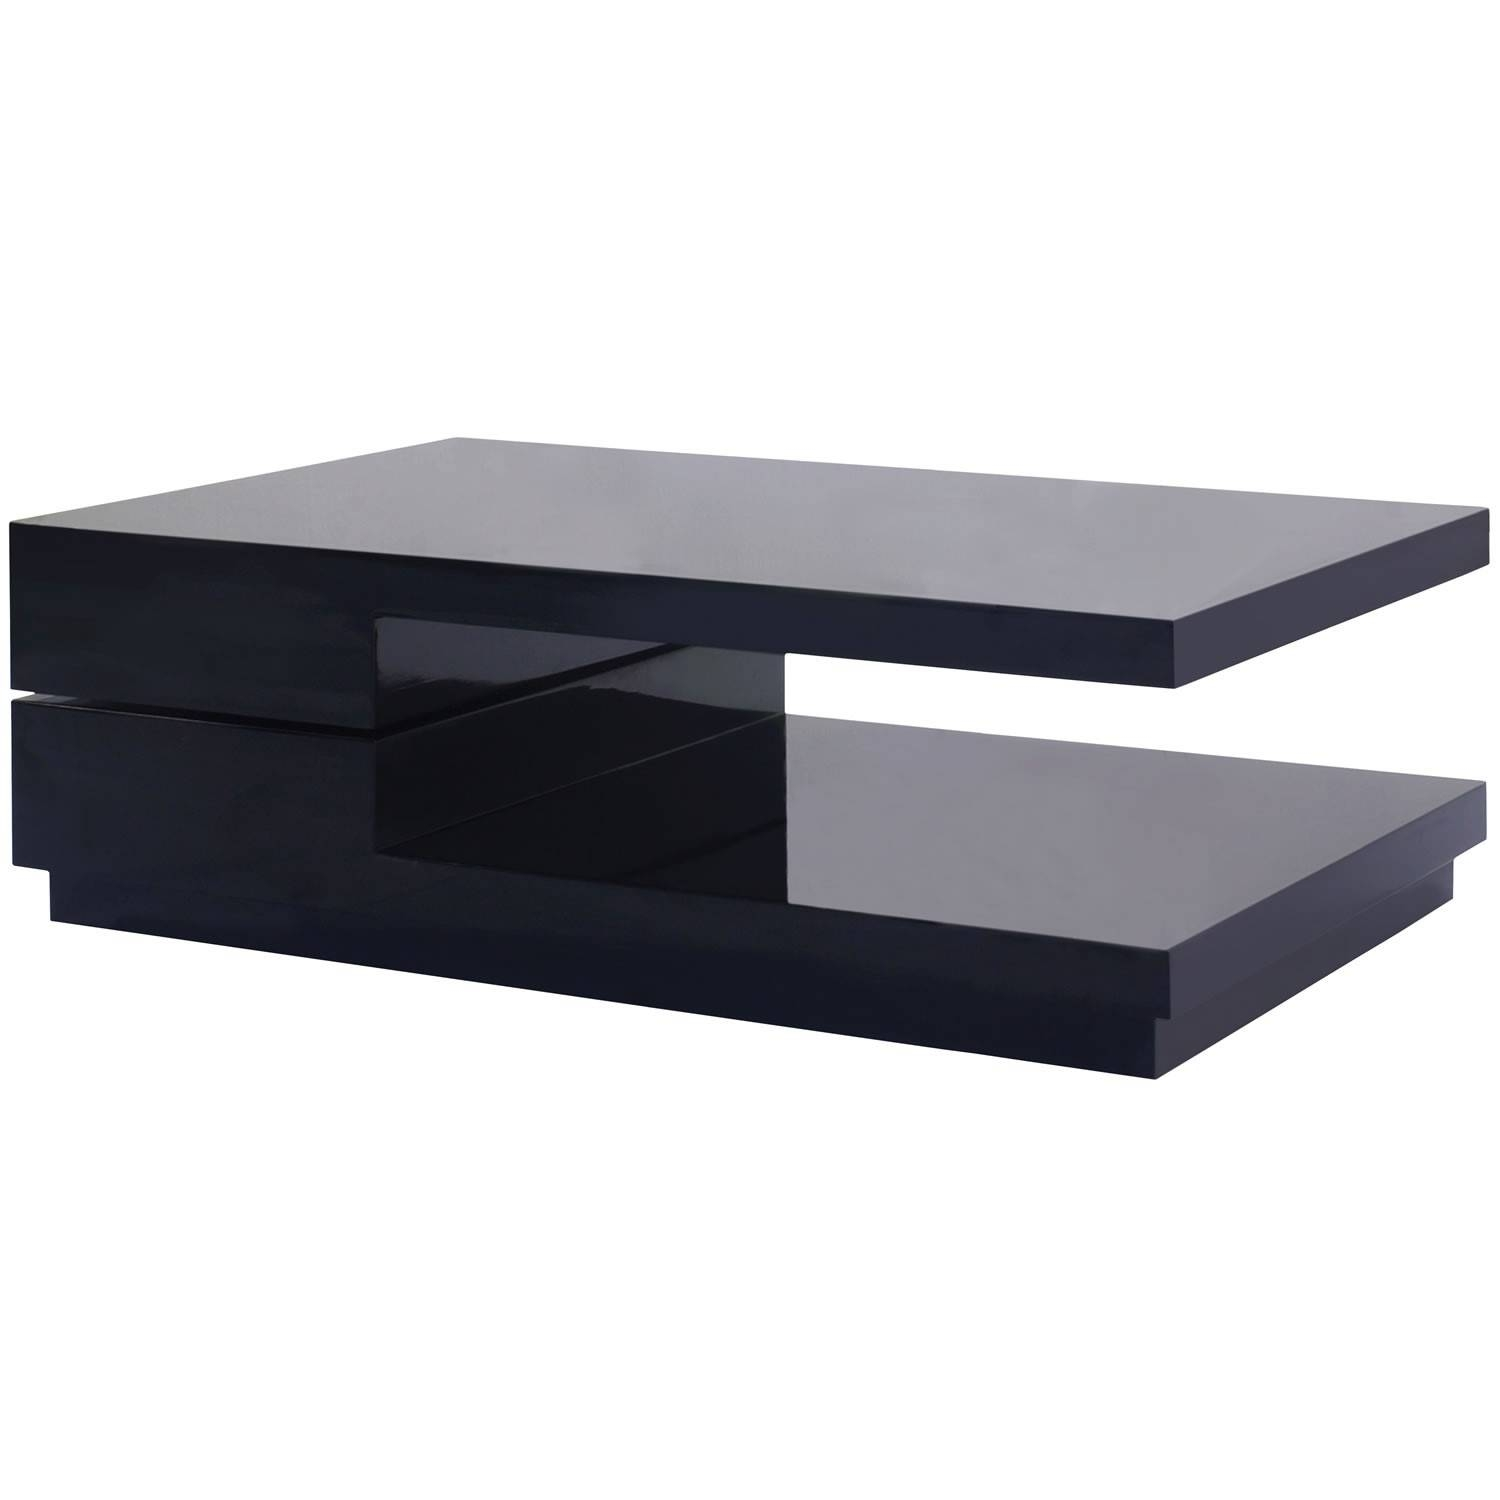 Coffee Table: New Modern Black Coffee Table Inspirations Black pertaining to Black Wood and Glass Coffee Tables (Image 6 of 30)